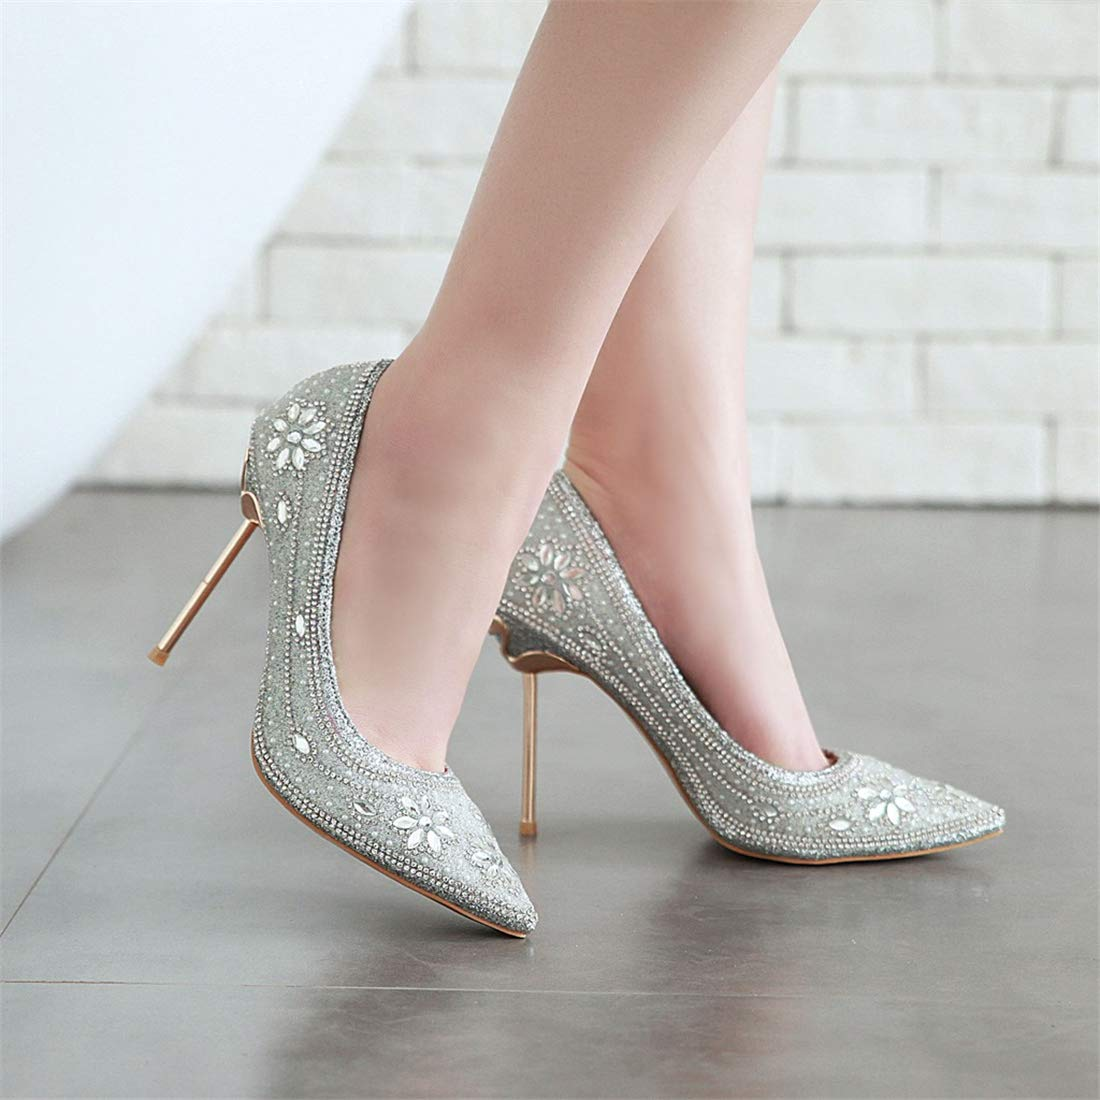 Coolulu Womens Pointed Toe High Heel Slip On Stiletto Pumps Diamante Court Shoes